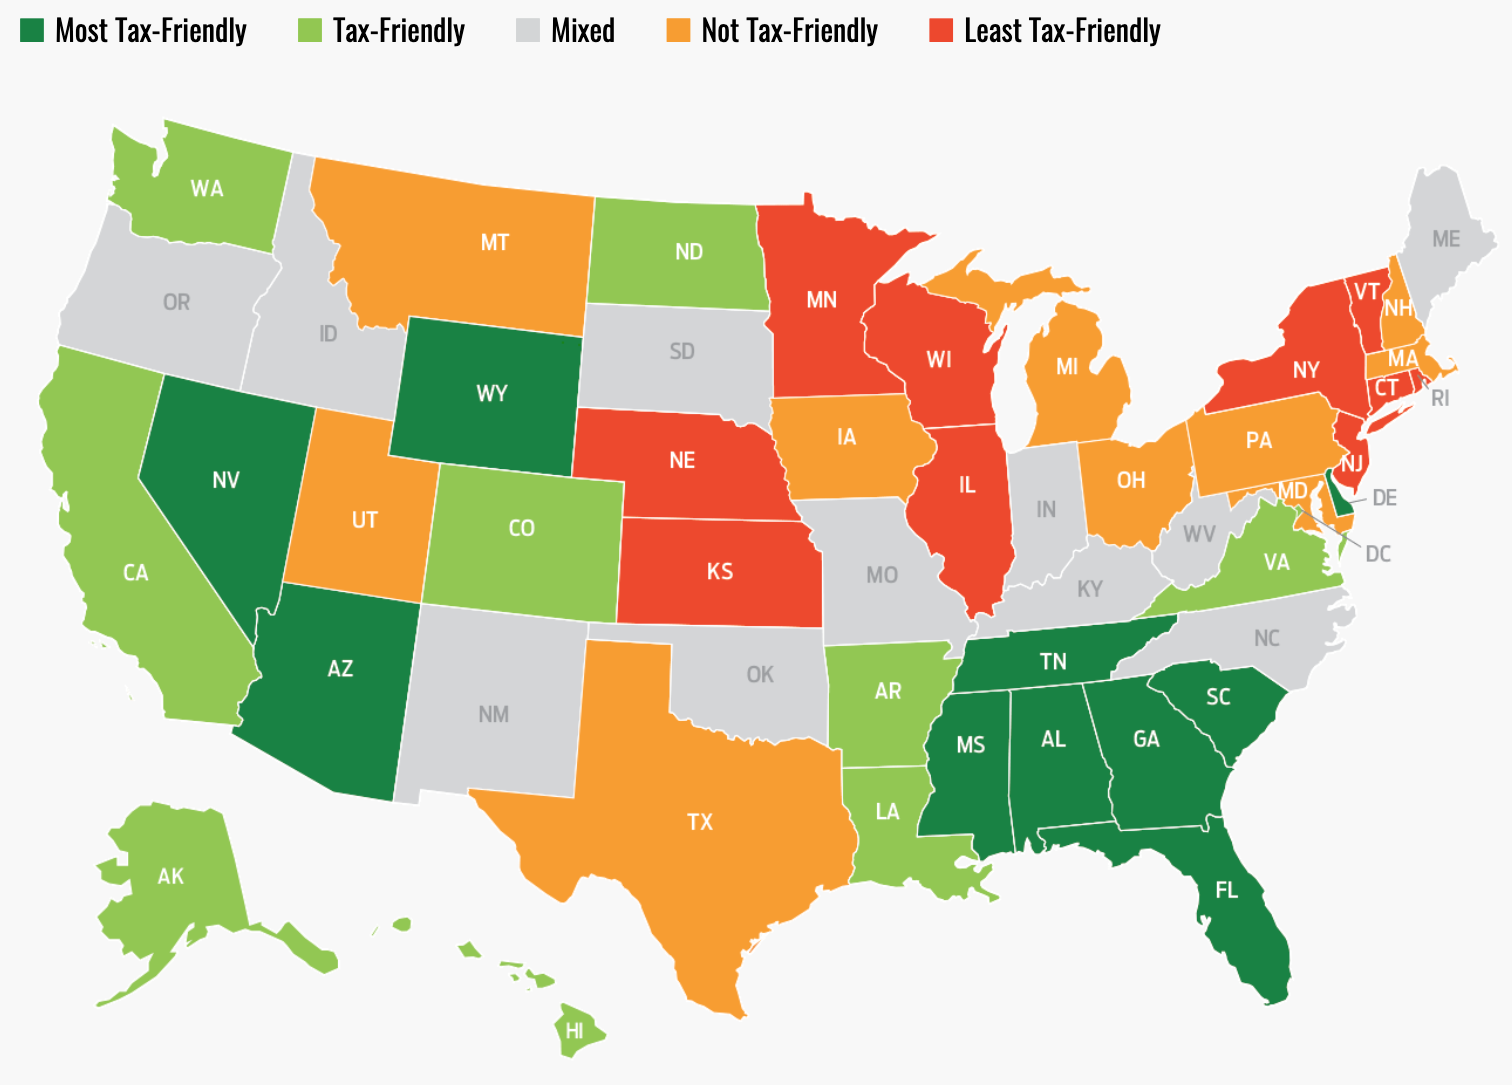 Map of America highlighting states from least tax-friendly to most tax-friendly